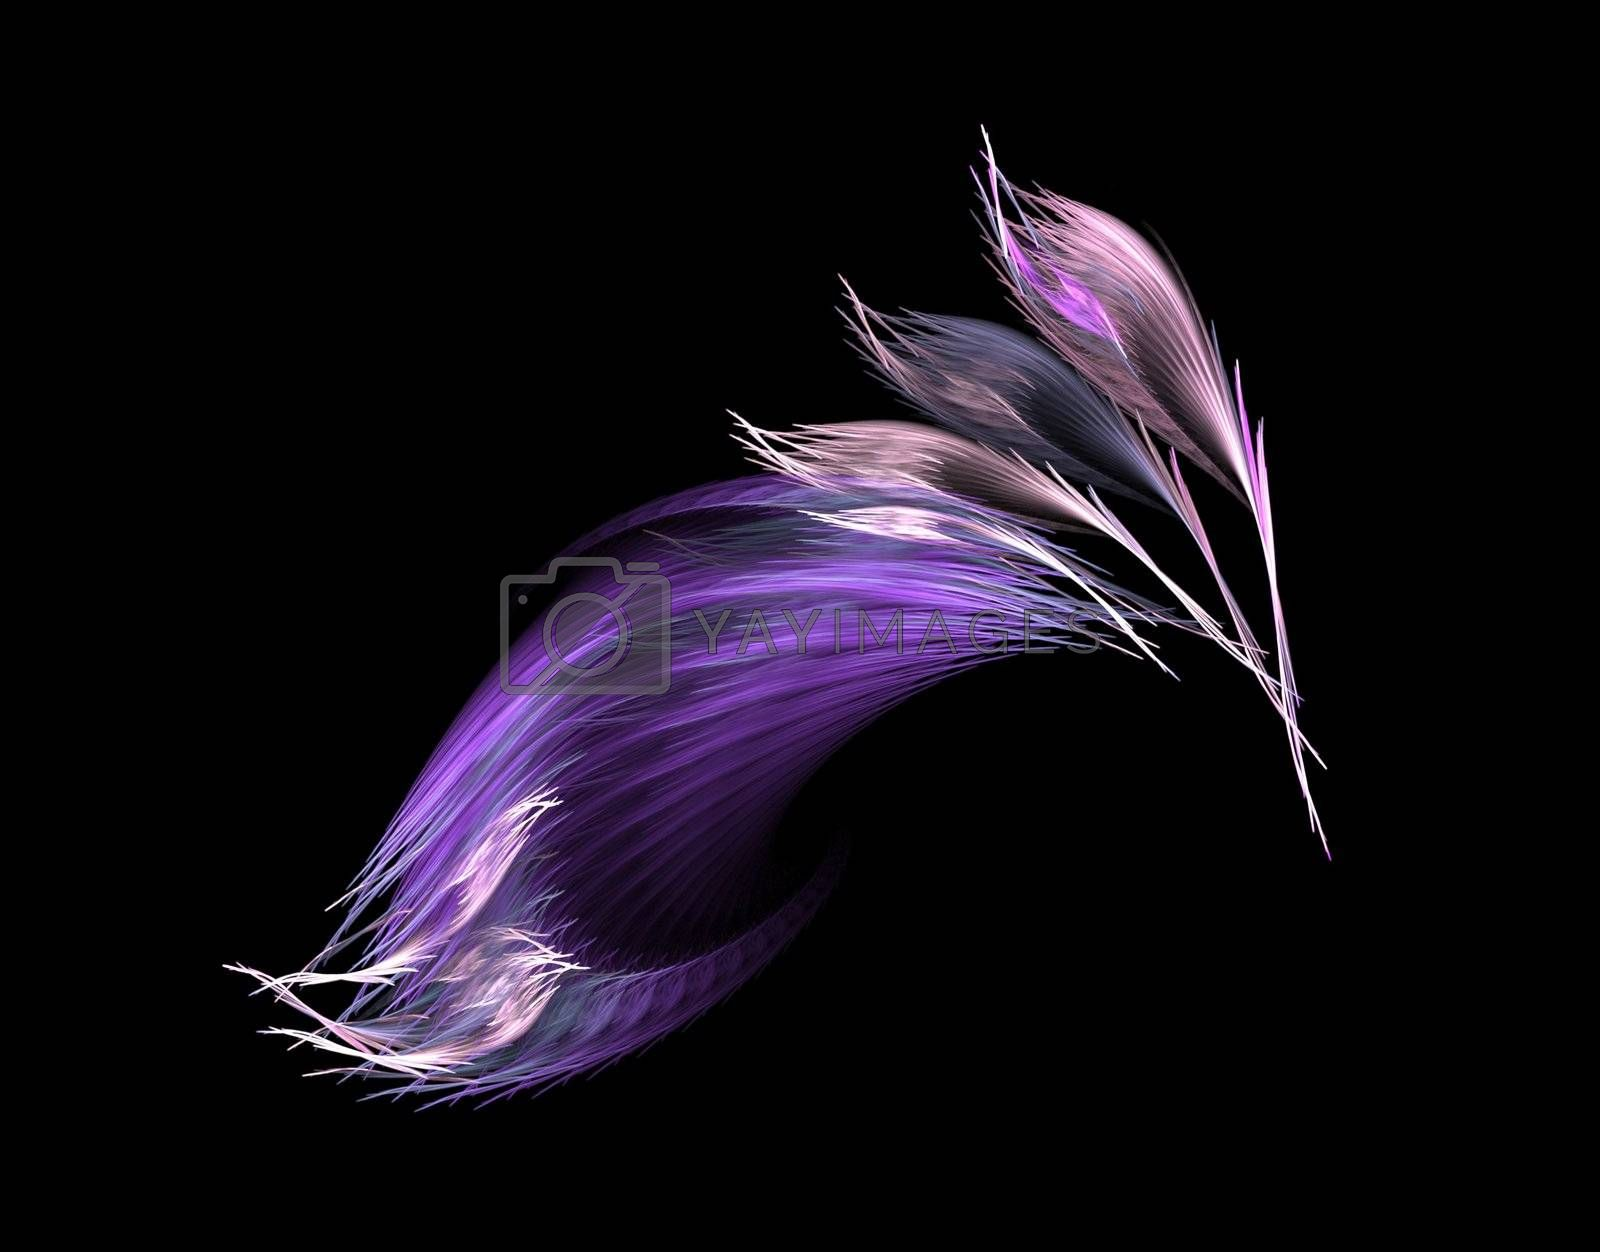 violet feathers to the infinity - fractal graphics